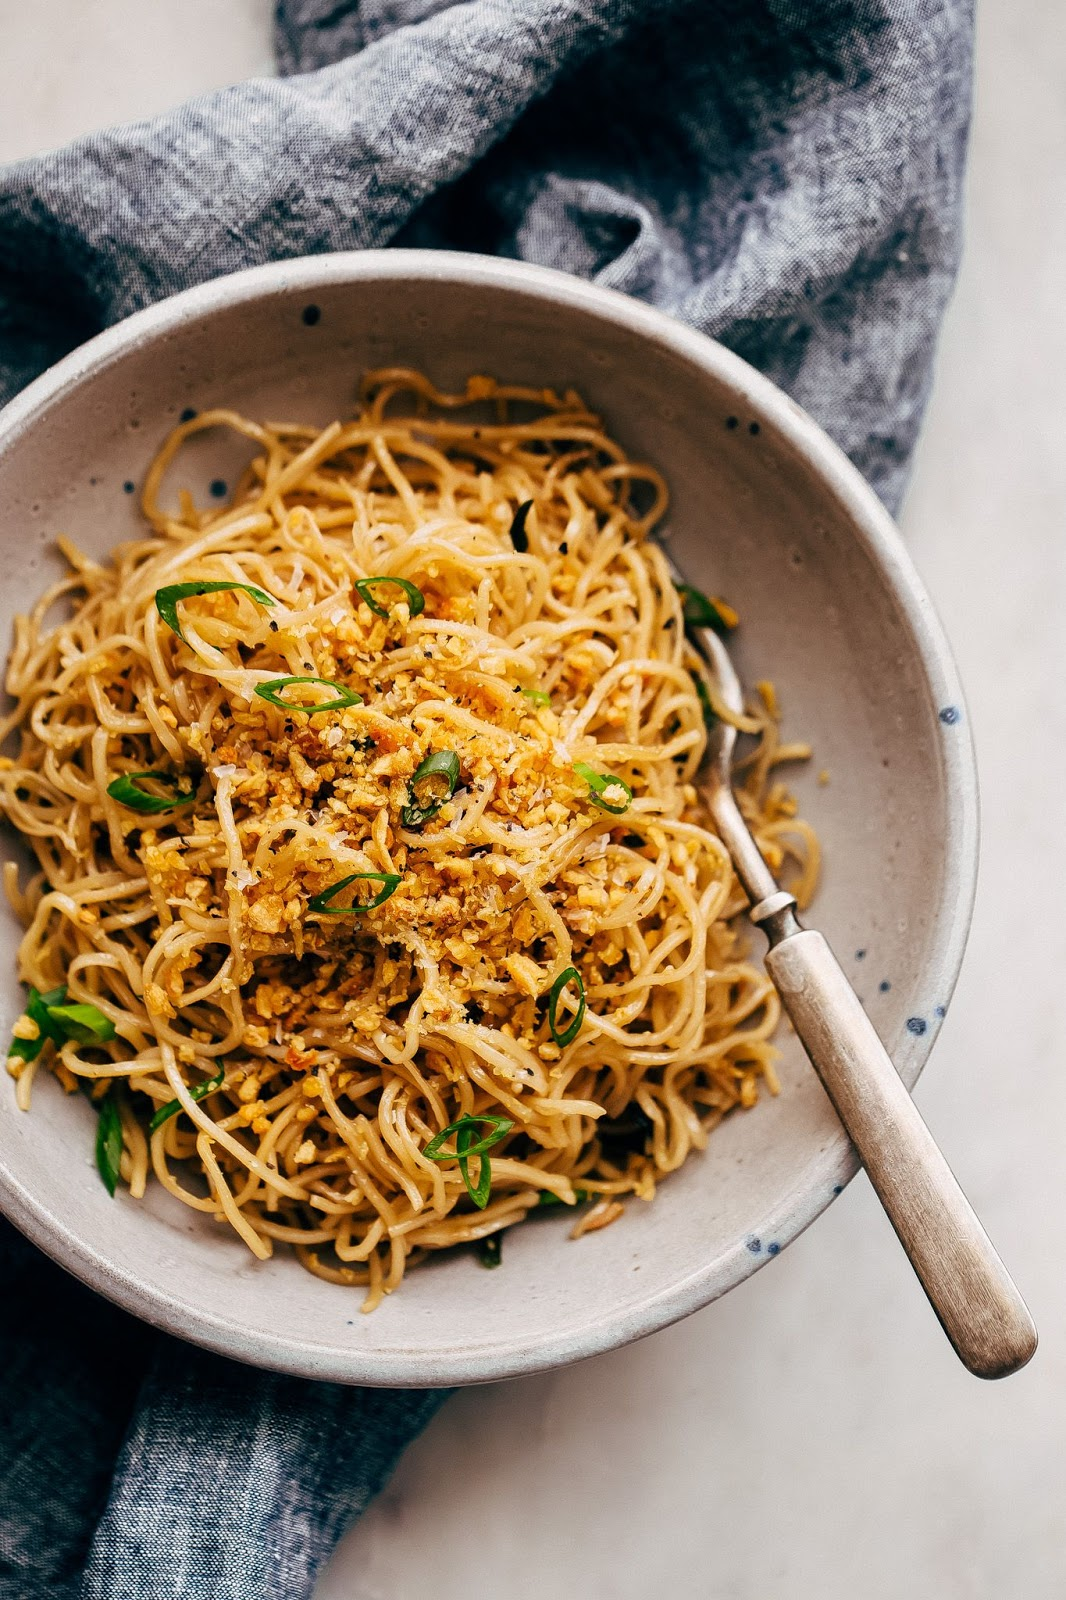 CRAZY GOOD QUICK GARLIC NOODLES #garlic #food #recipe #eathing #healthy